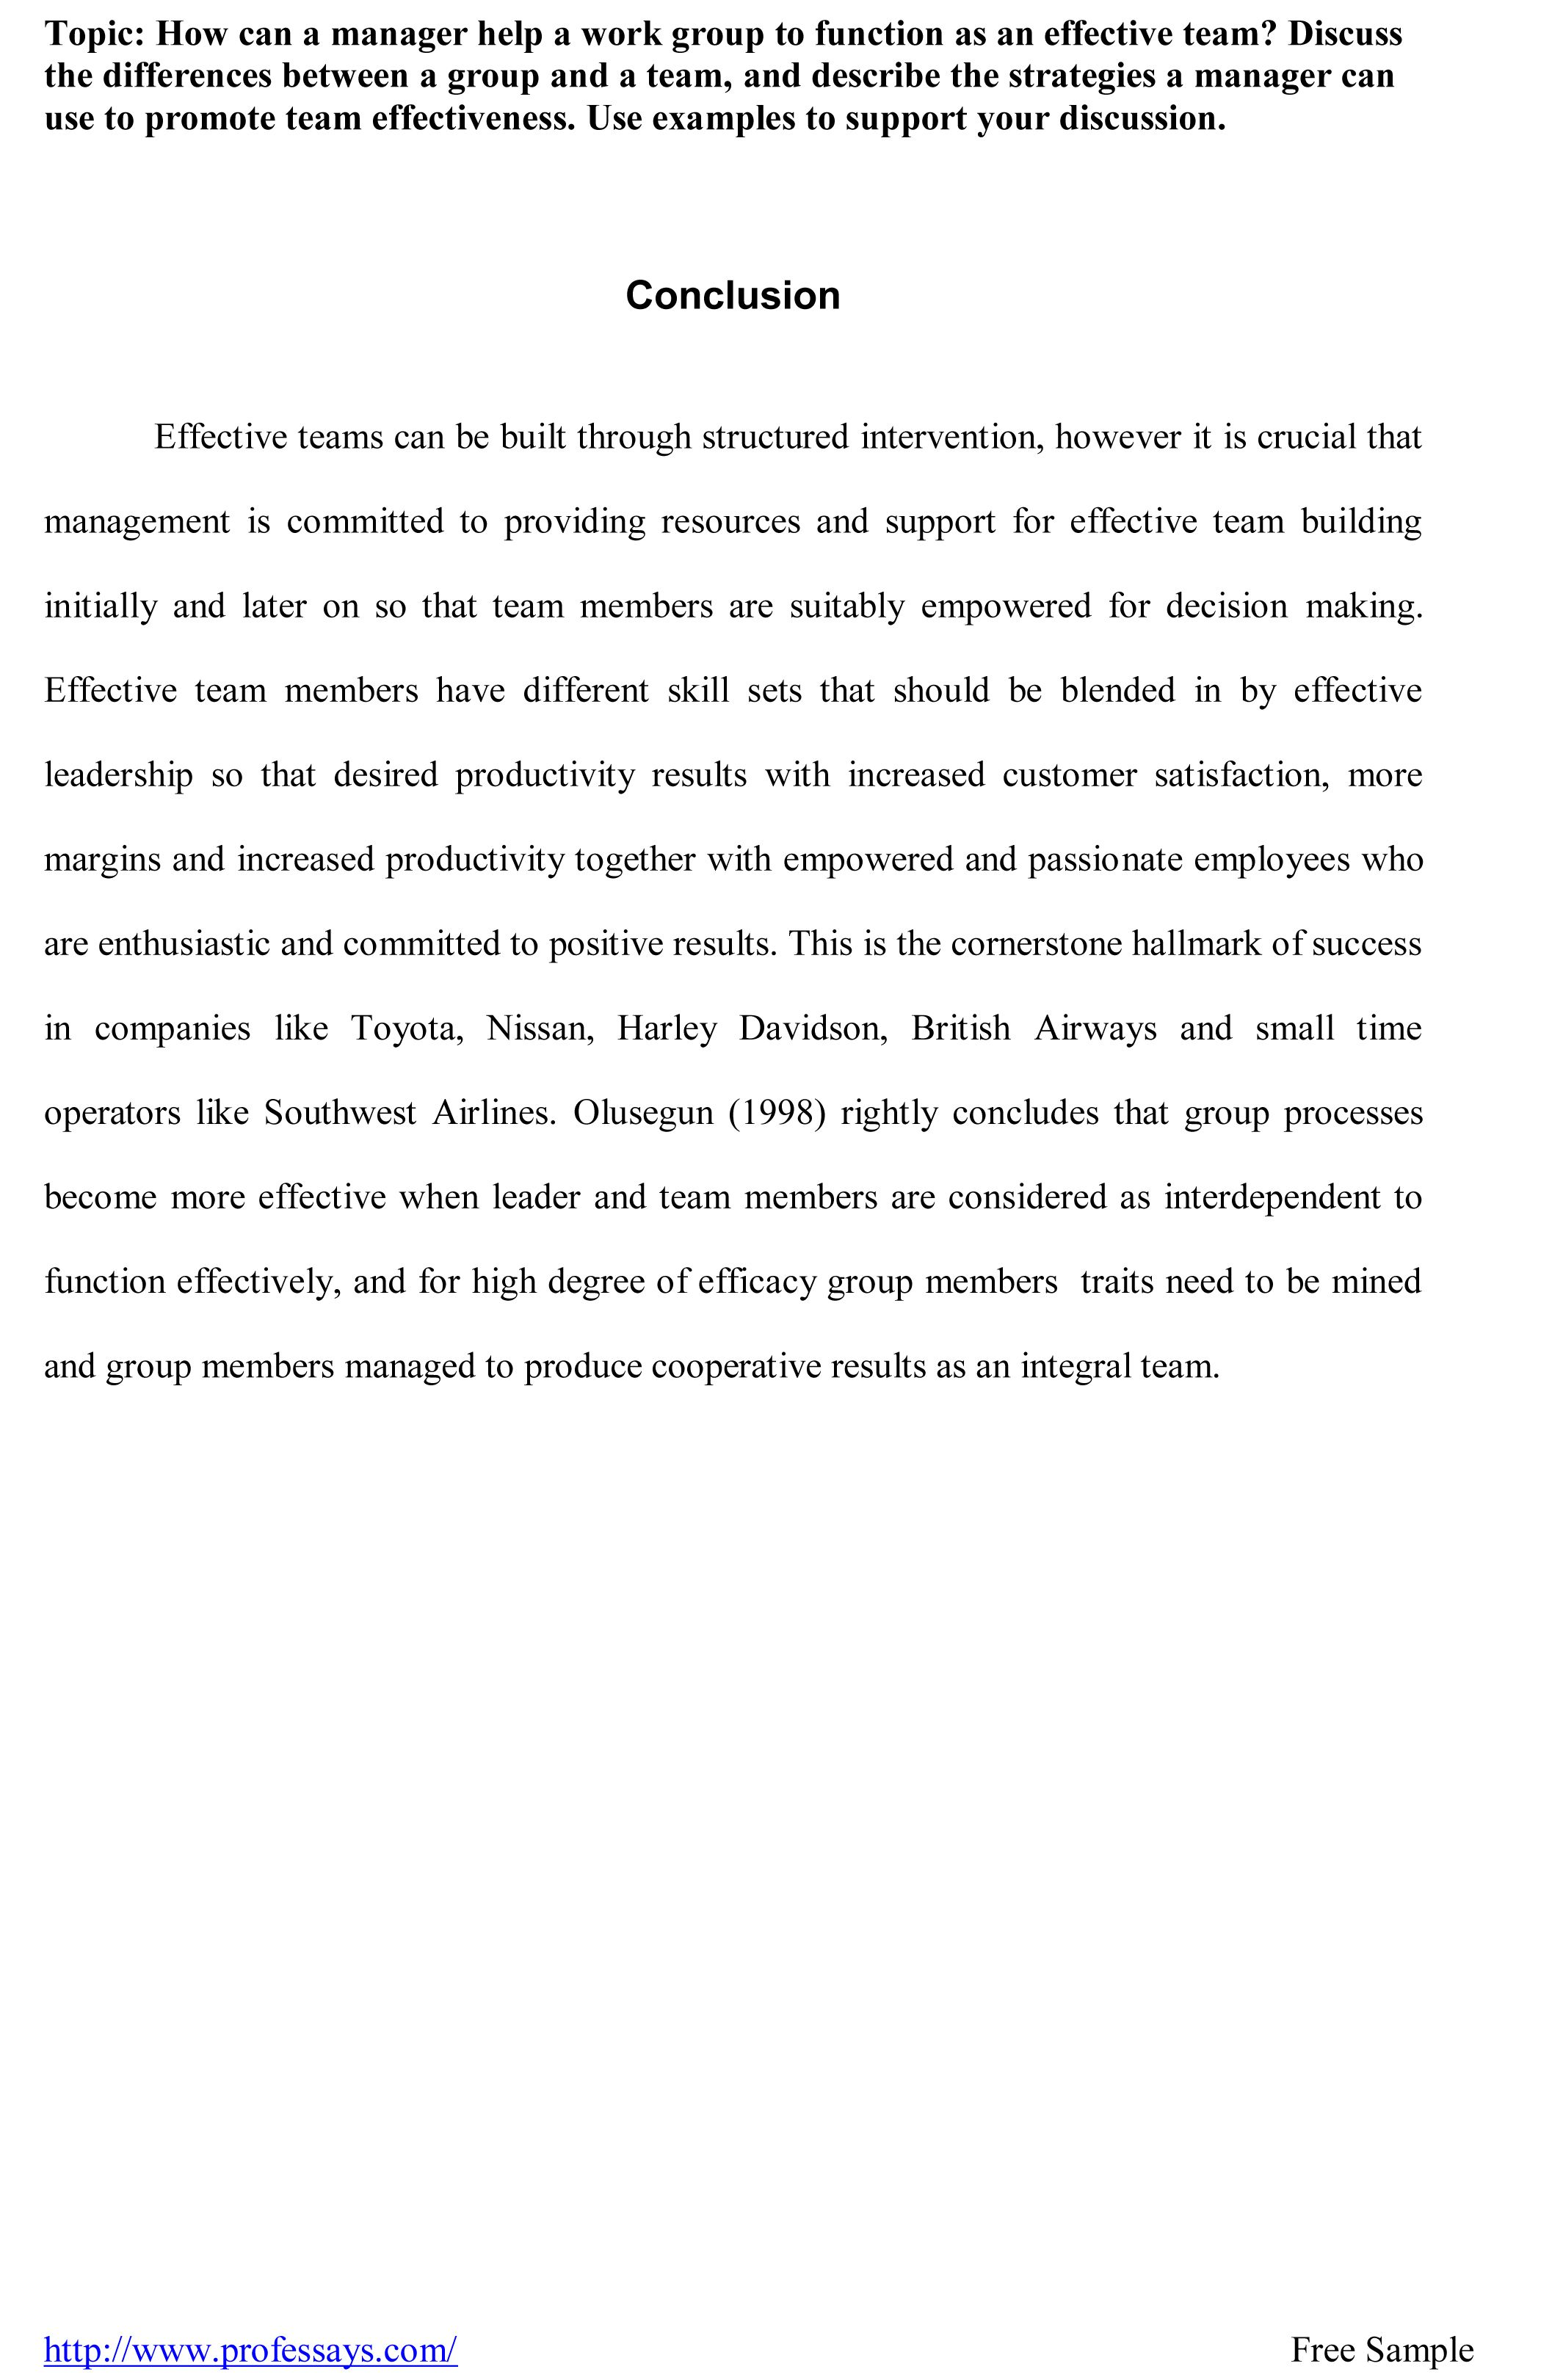 003 Argumentative Research Paper Conclusion Example Outstanding Full